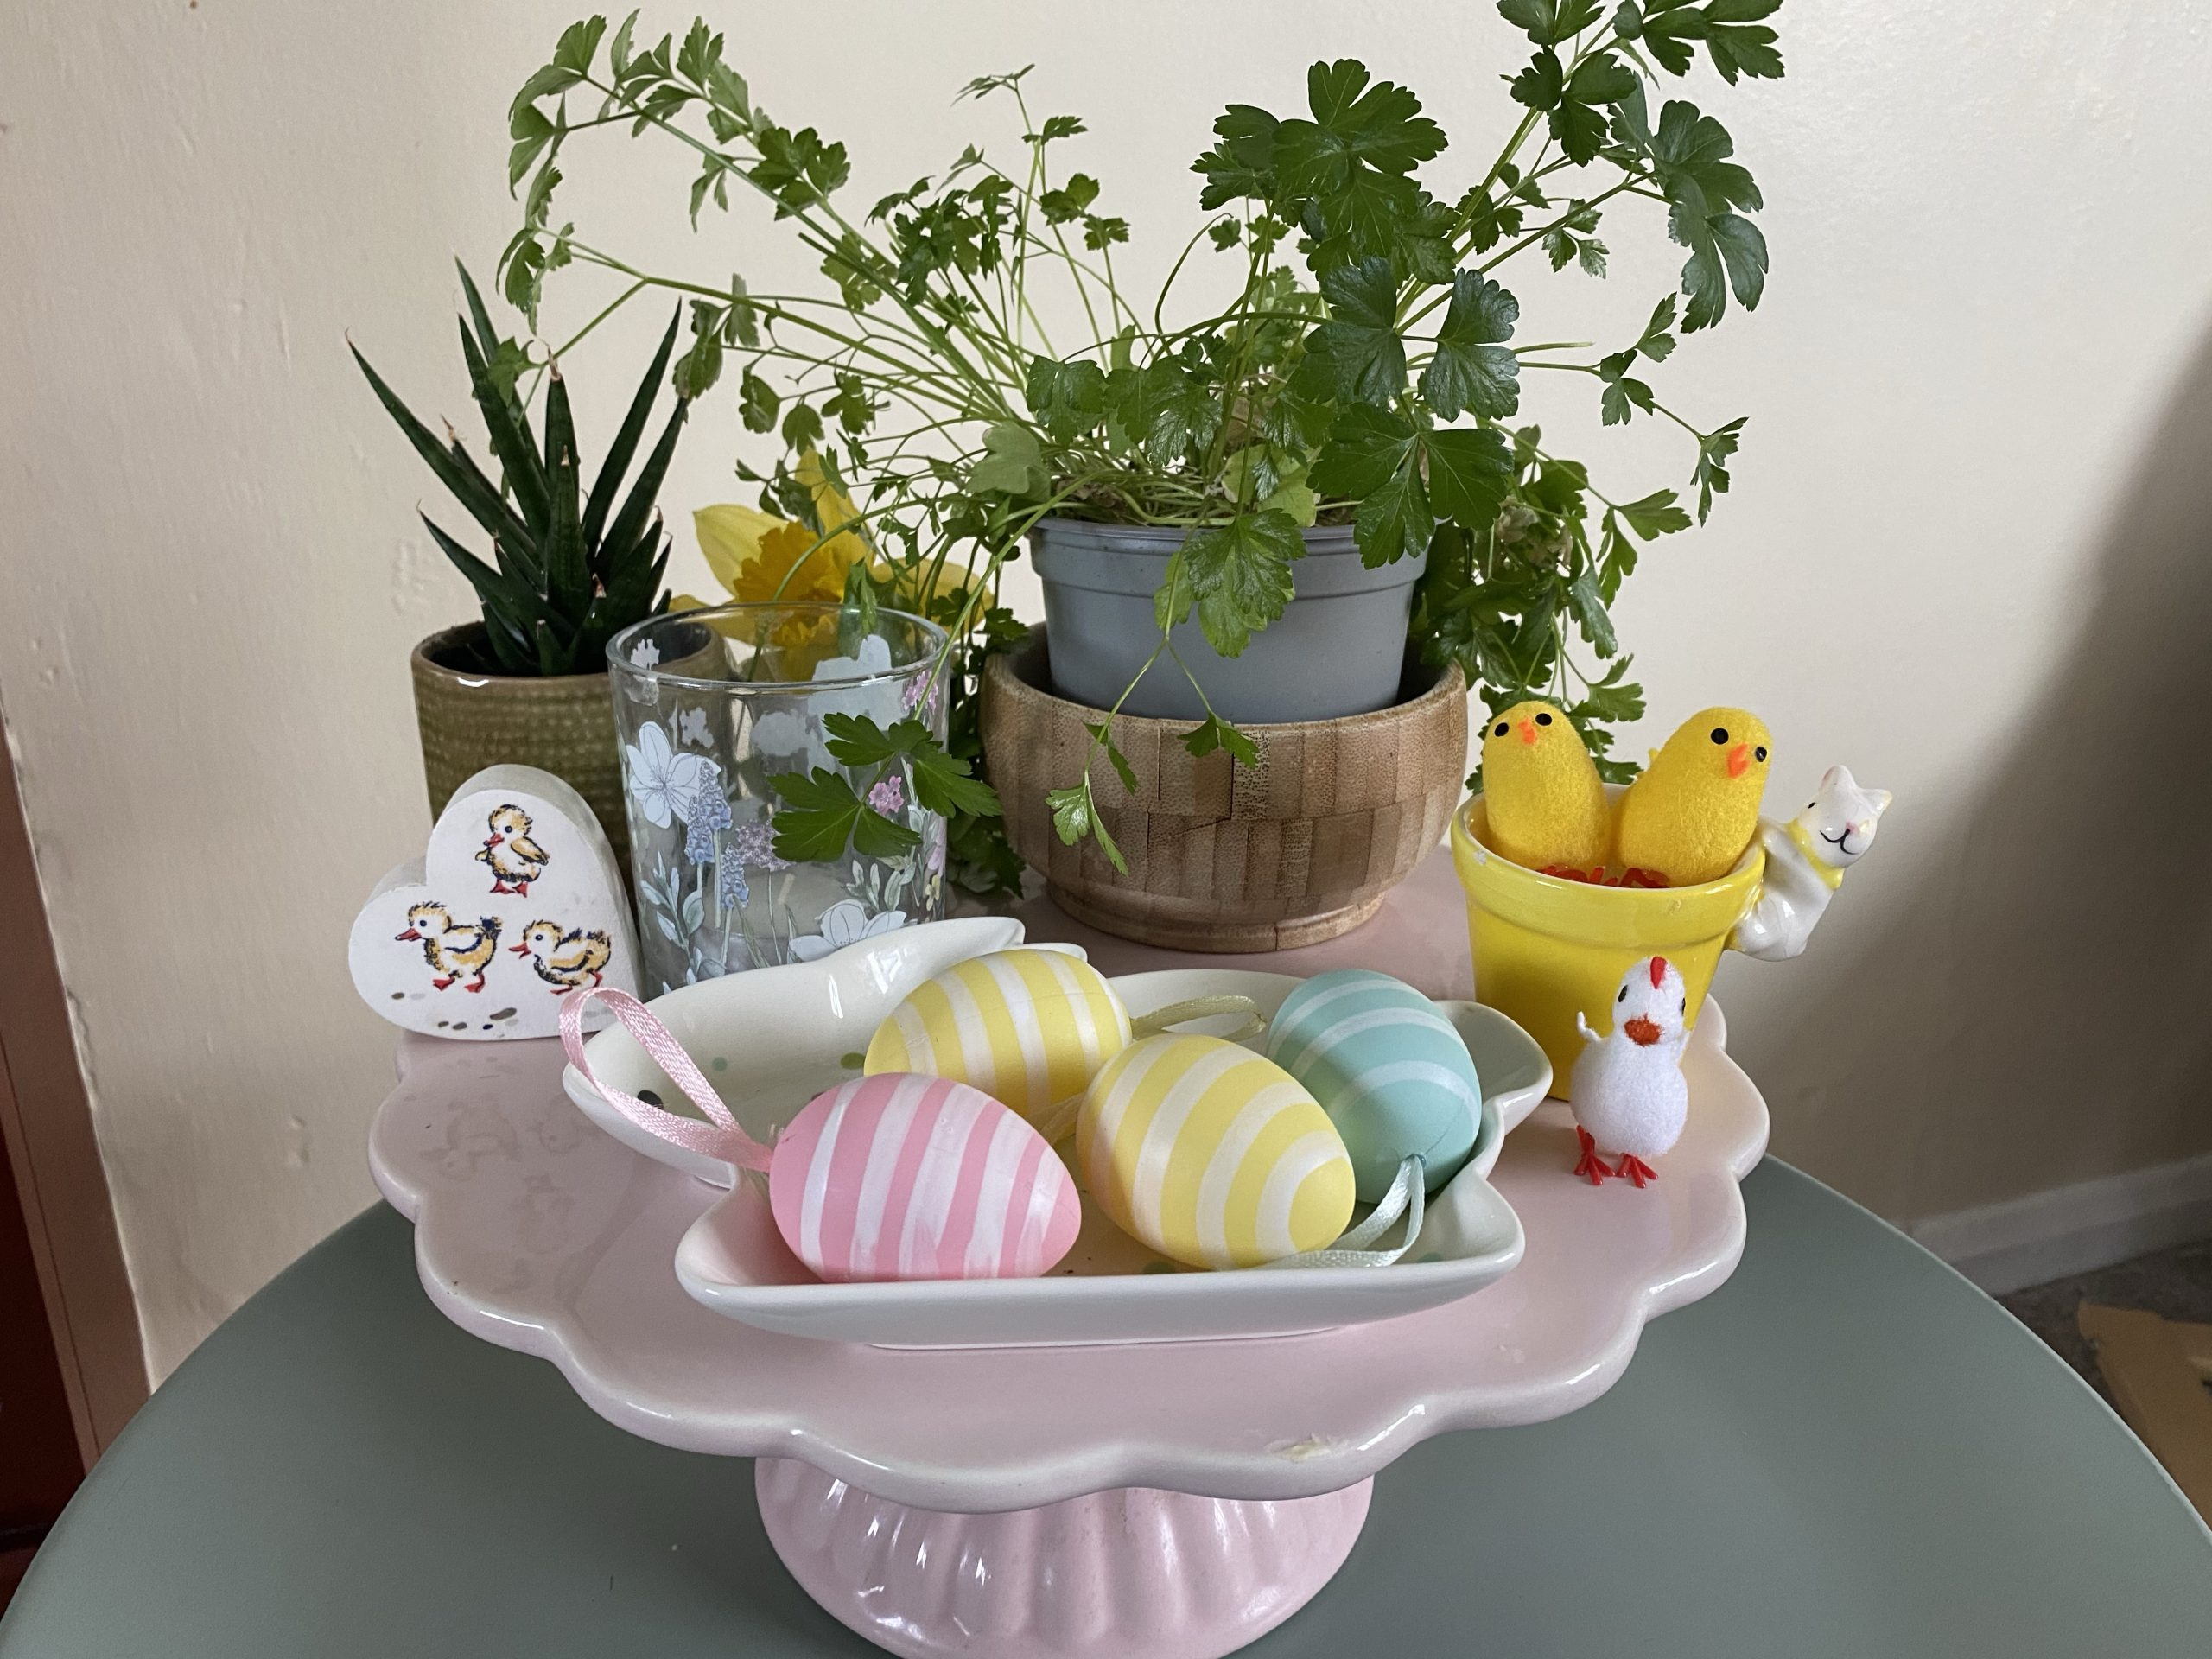 Easter Hoe decor on a budget- A cake stand filled with Easter flowers, eggs and chicks